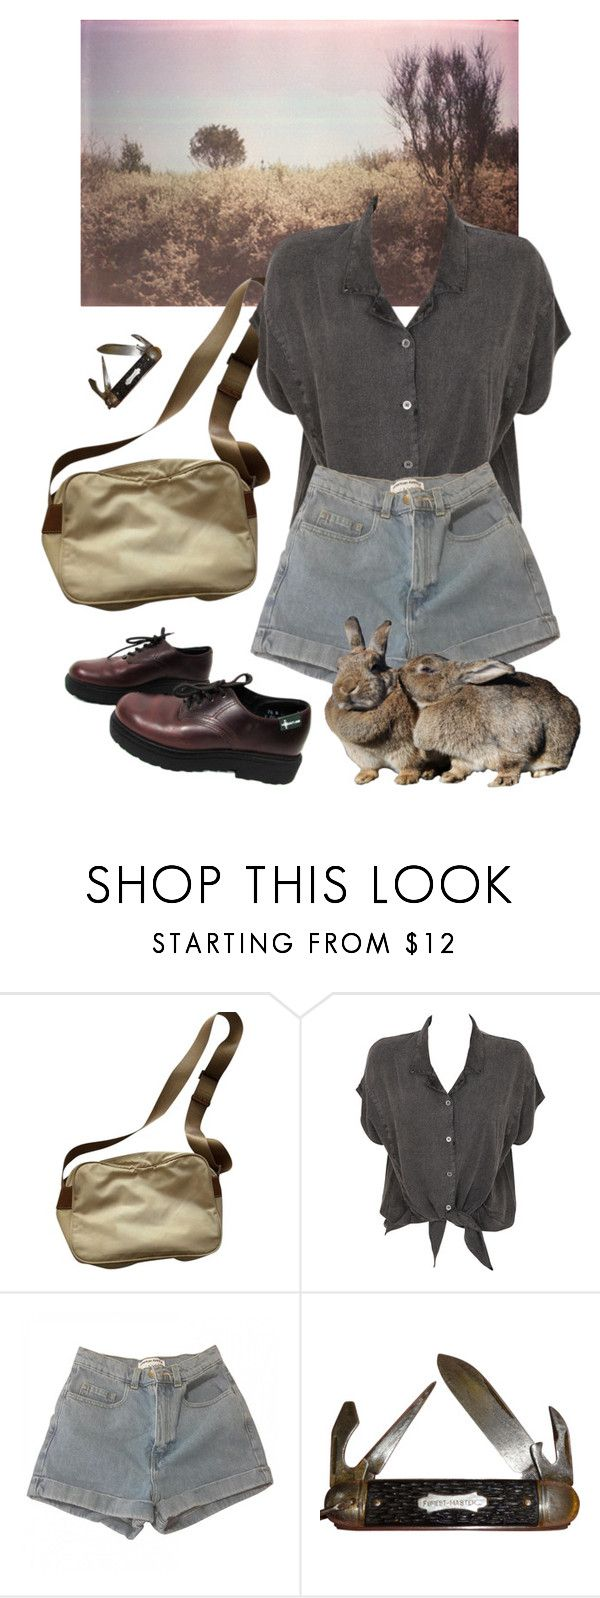 """dirt"" by paper-freckles ❤ liked on Polyvore featuring Prada, Evil Twin, American Apparel and Eastland"